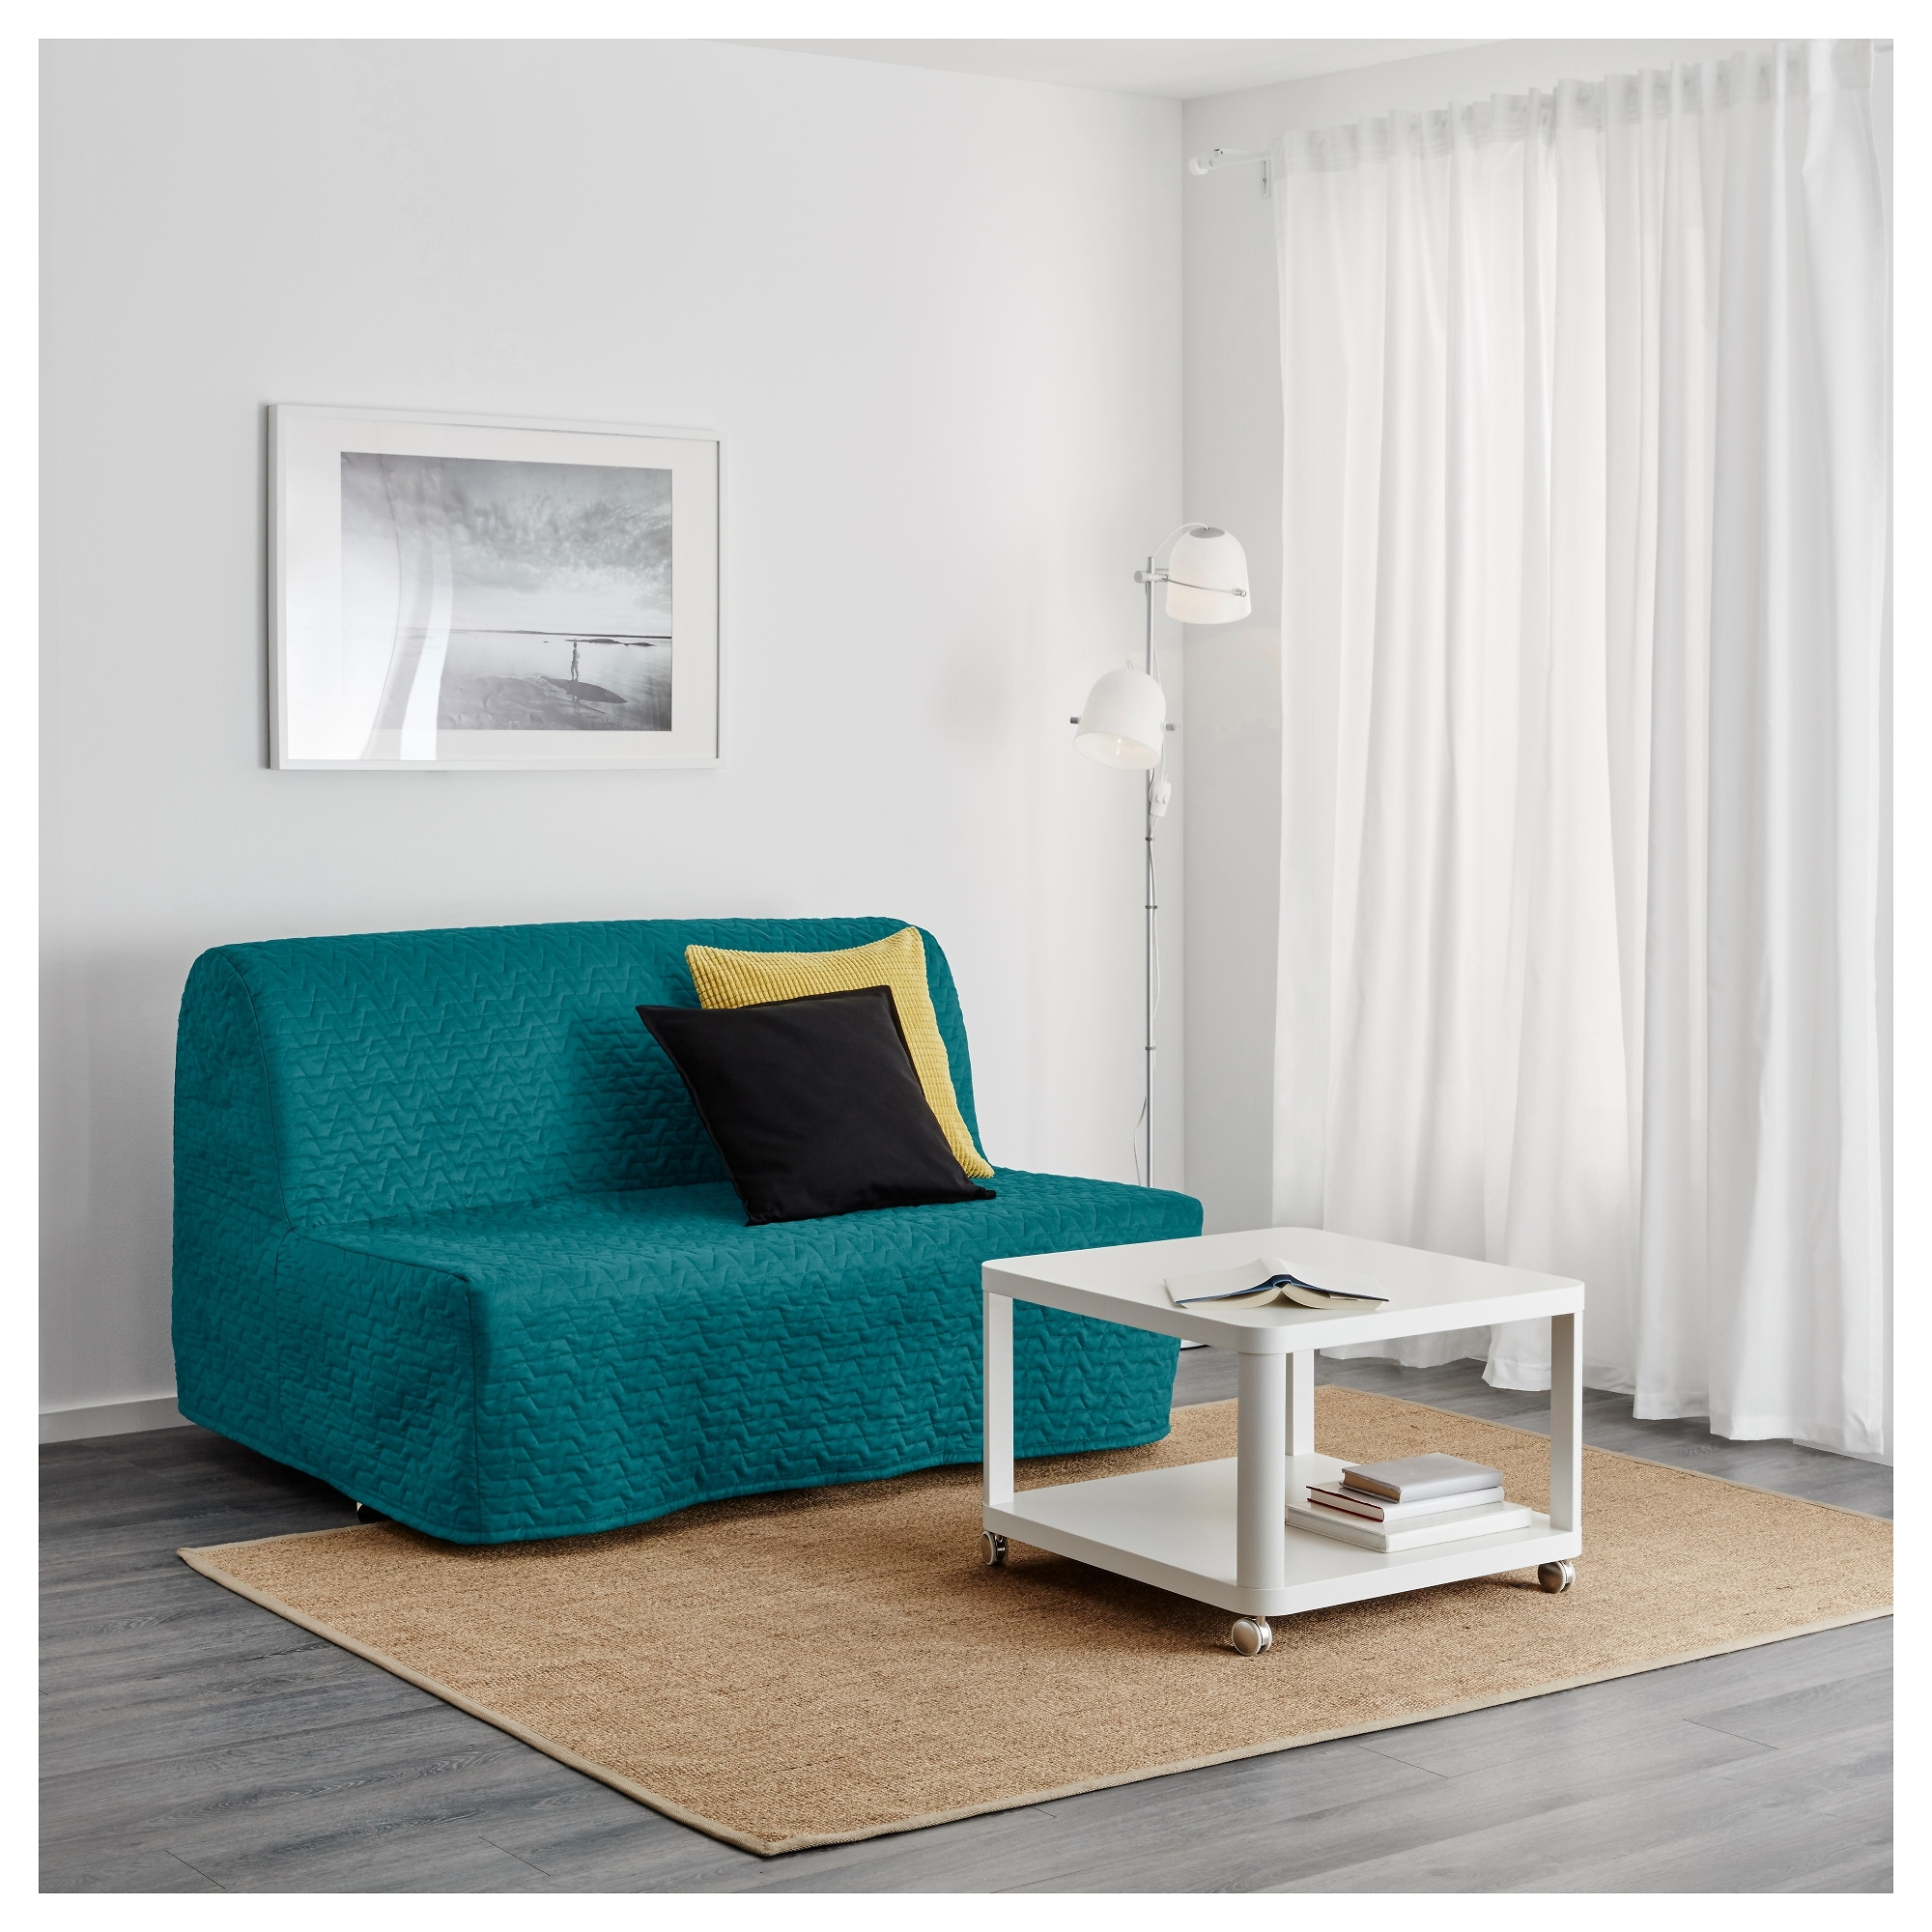 Widely Used Turquoise Sofas Within Lycksele Lövås Sleeper Sofa – Ransta White – Ikea (View 20 of 20)